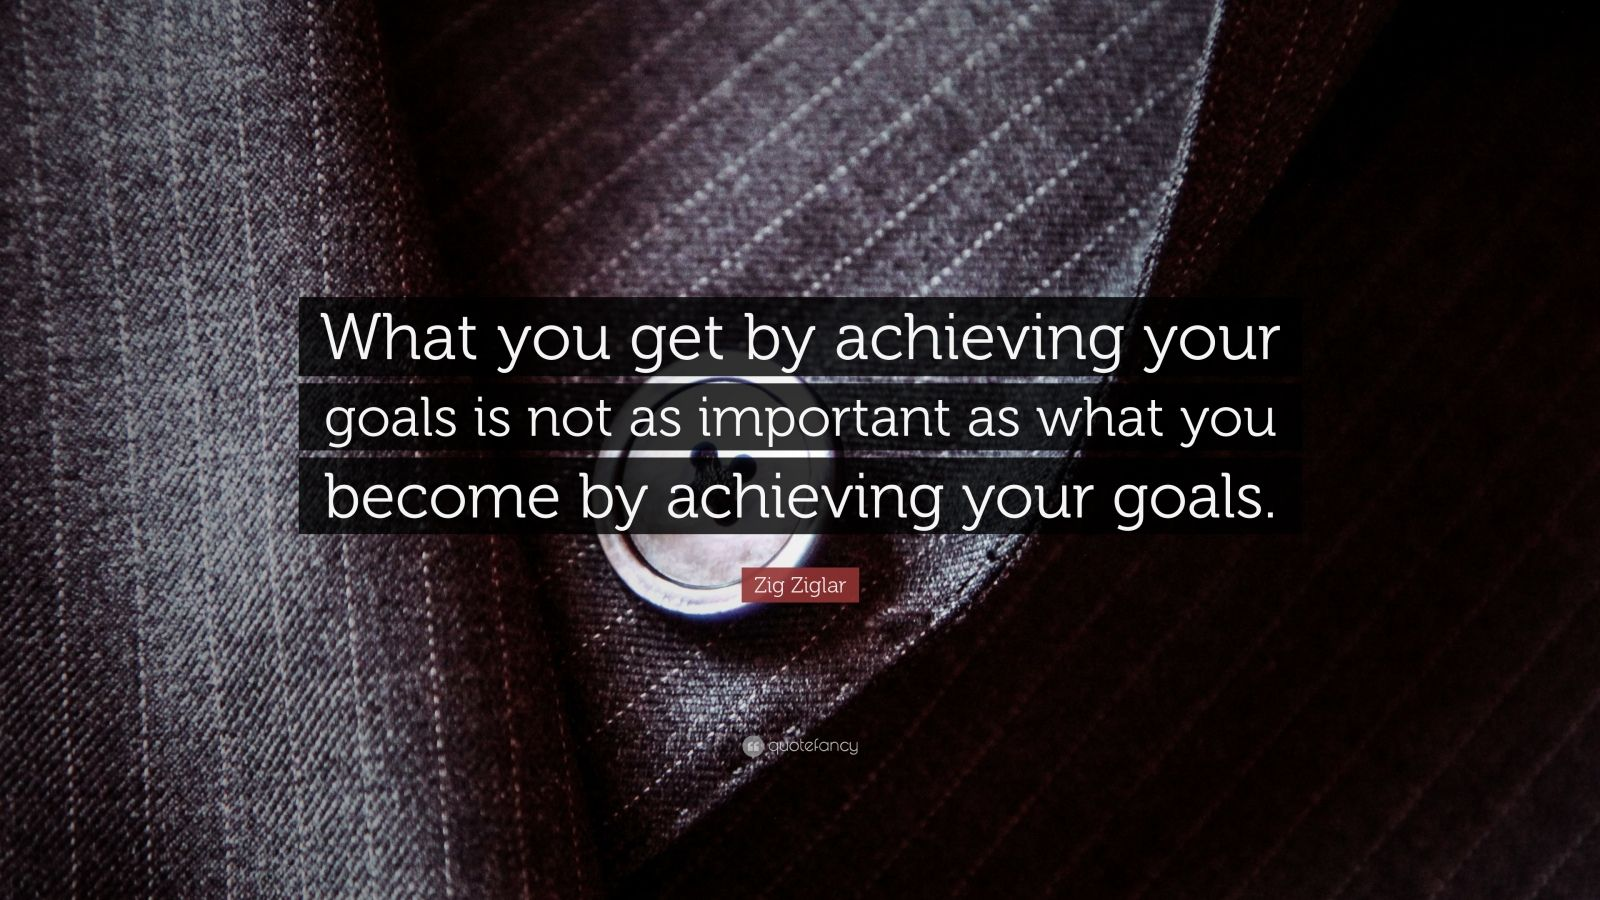 What You Get by Achieving Your Goals